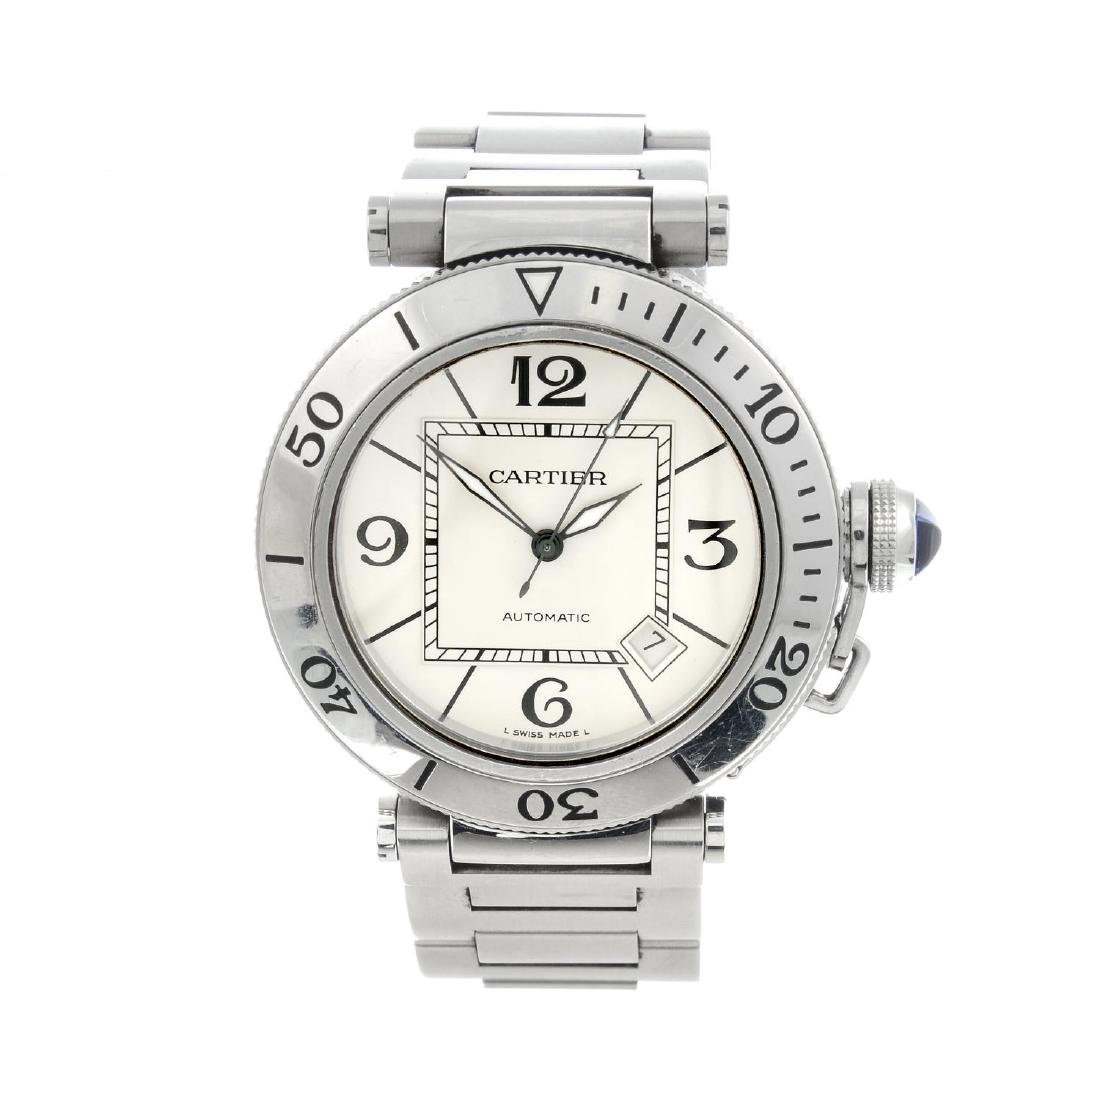 CARTIER - a Pasha bracelet watch. Stainless steel case